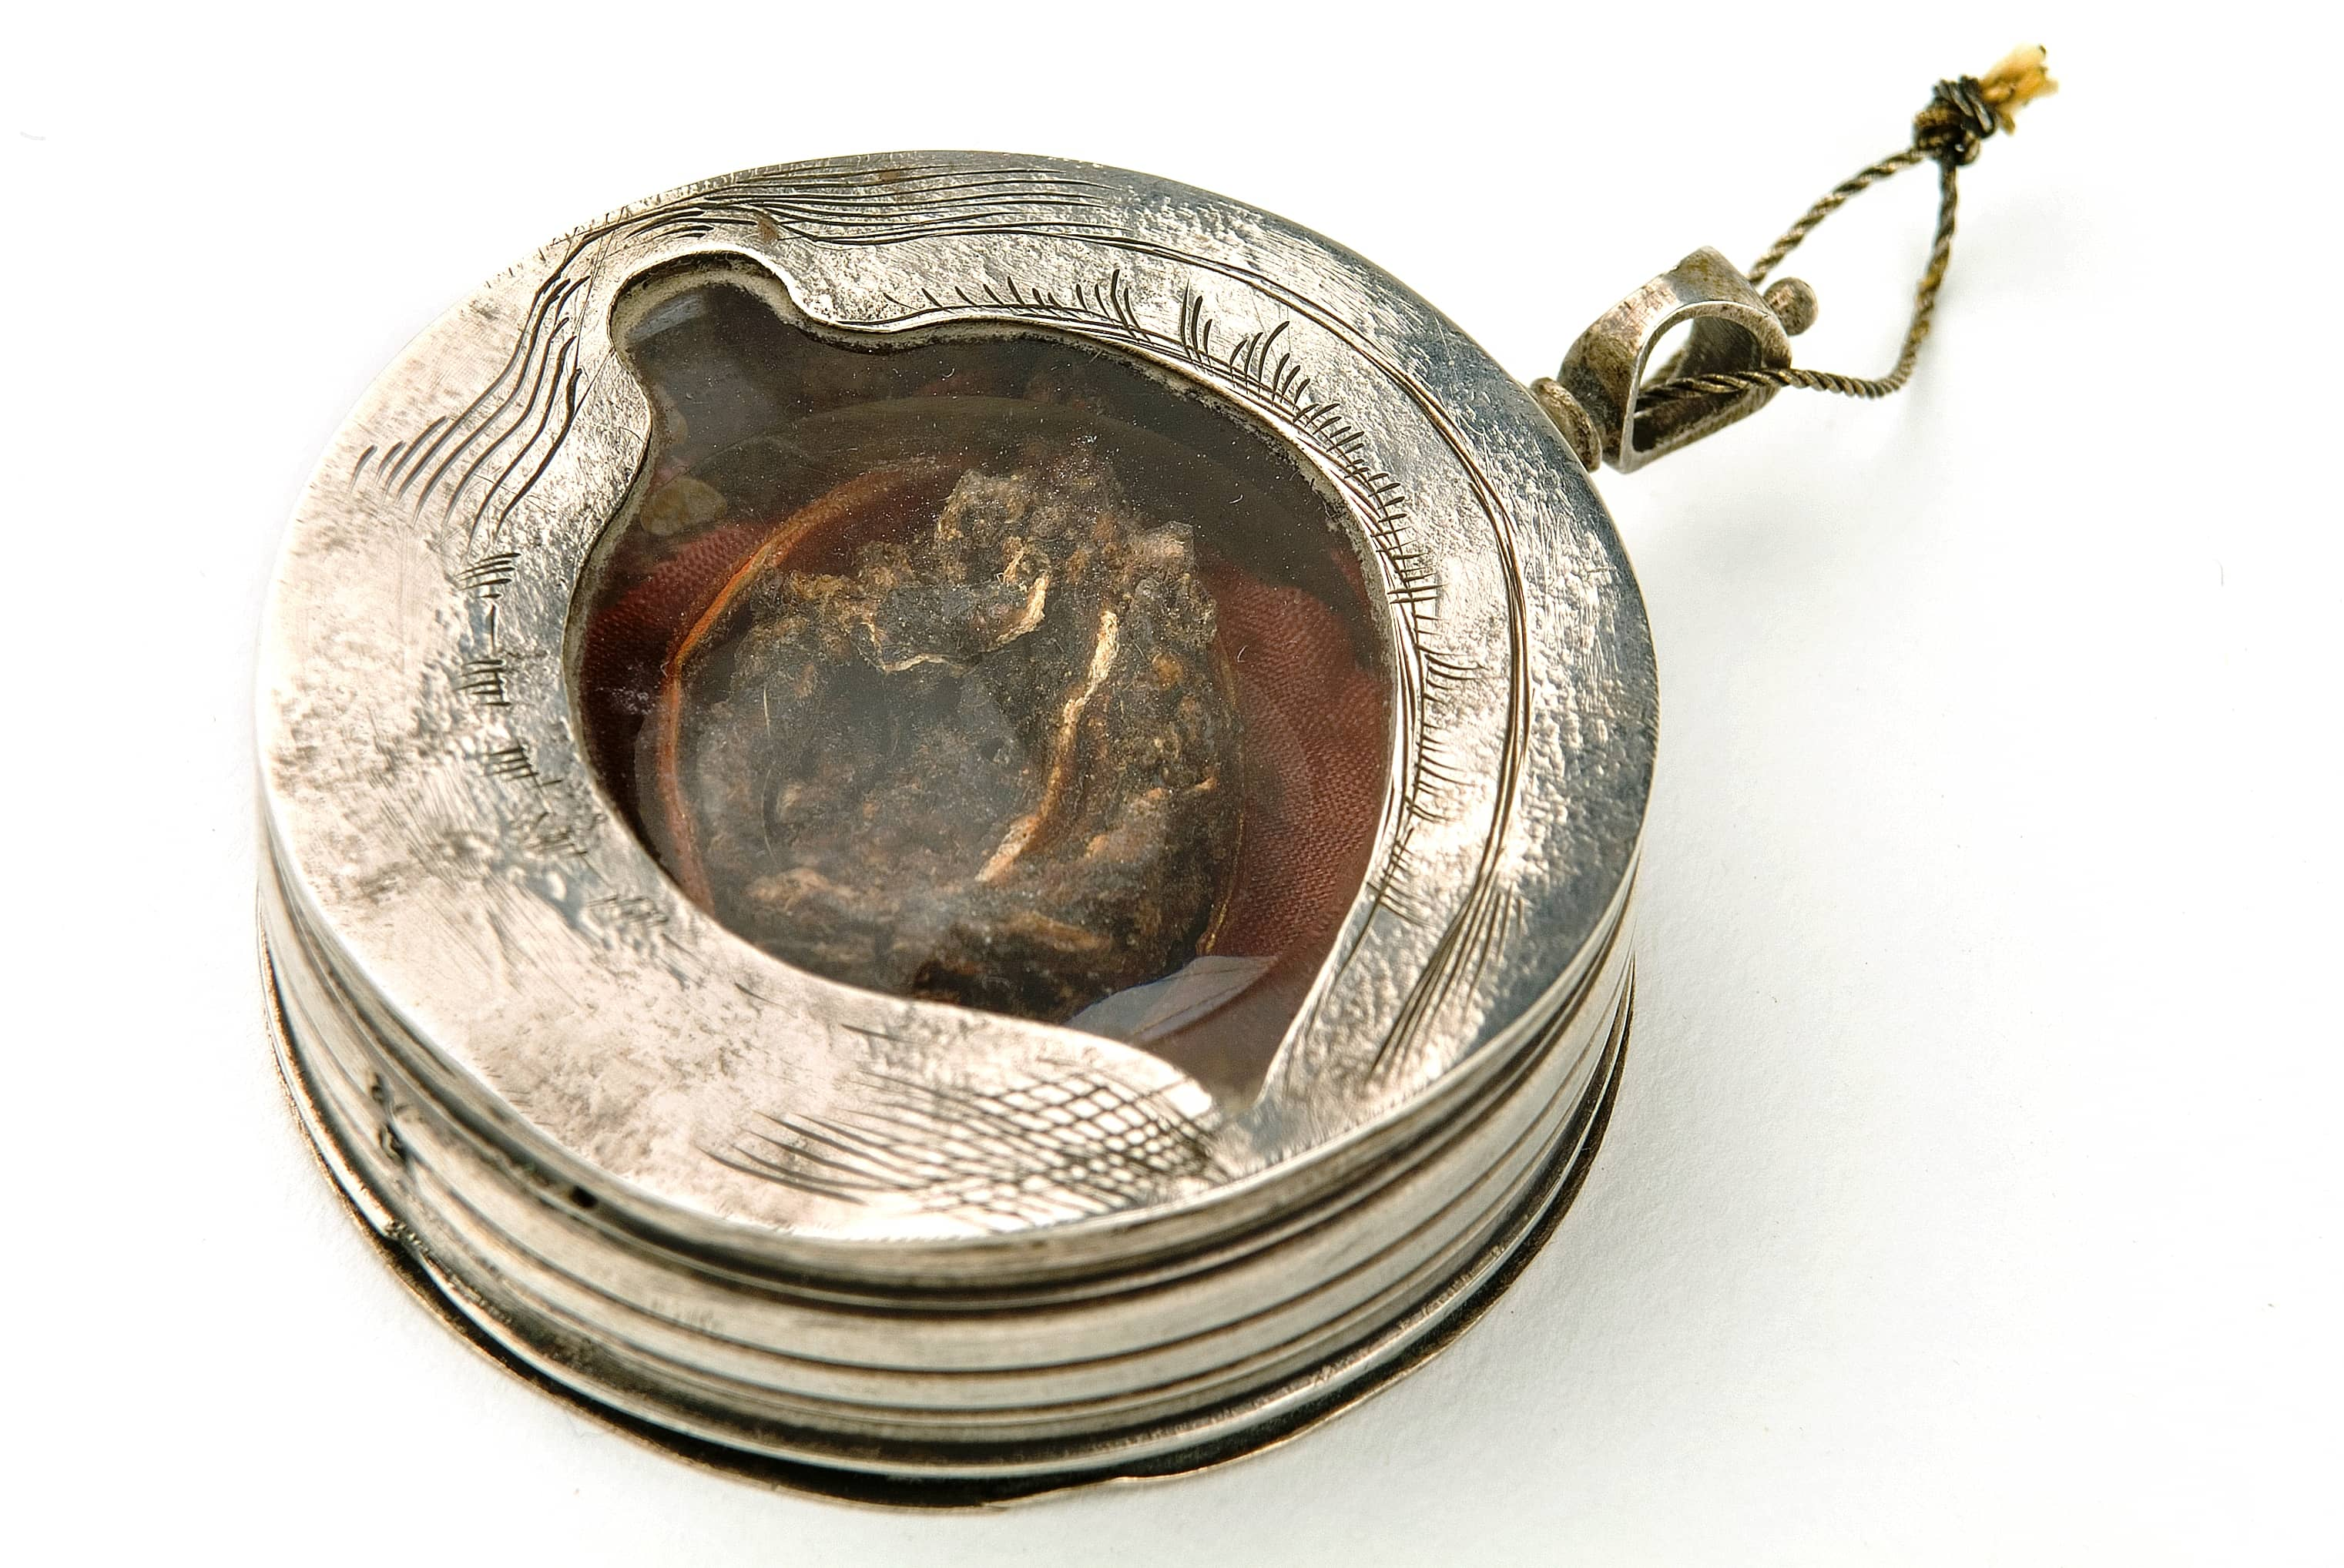 Photograph of a round silver container with a glass oval shaped top insert showing a grim looking shrivelled up object within. Around the glass the silver has been scored to look like eyelashes.